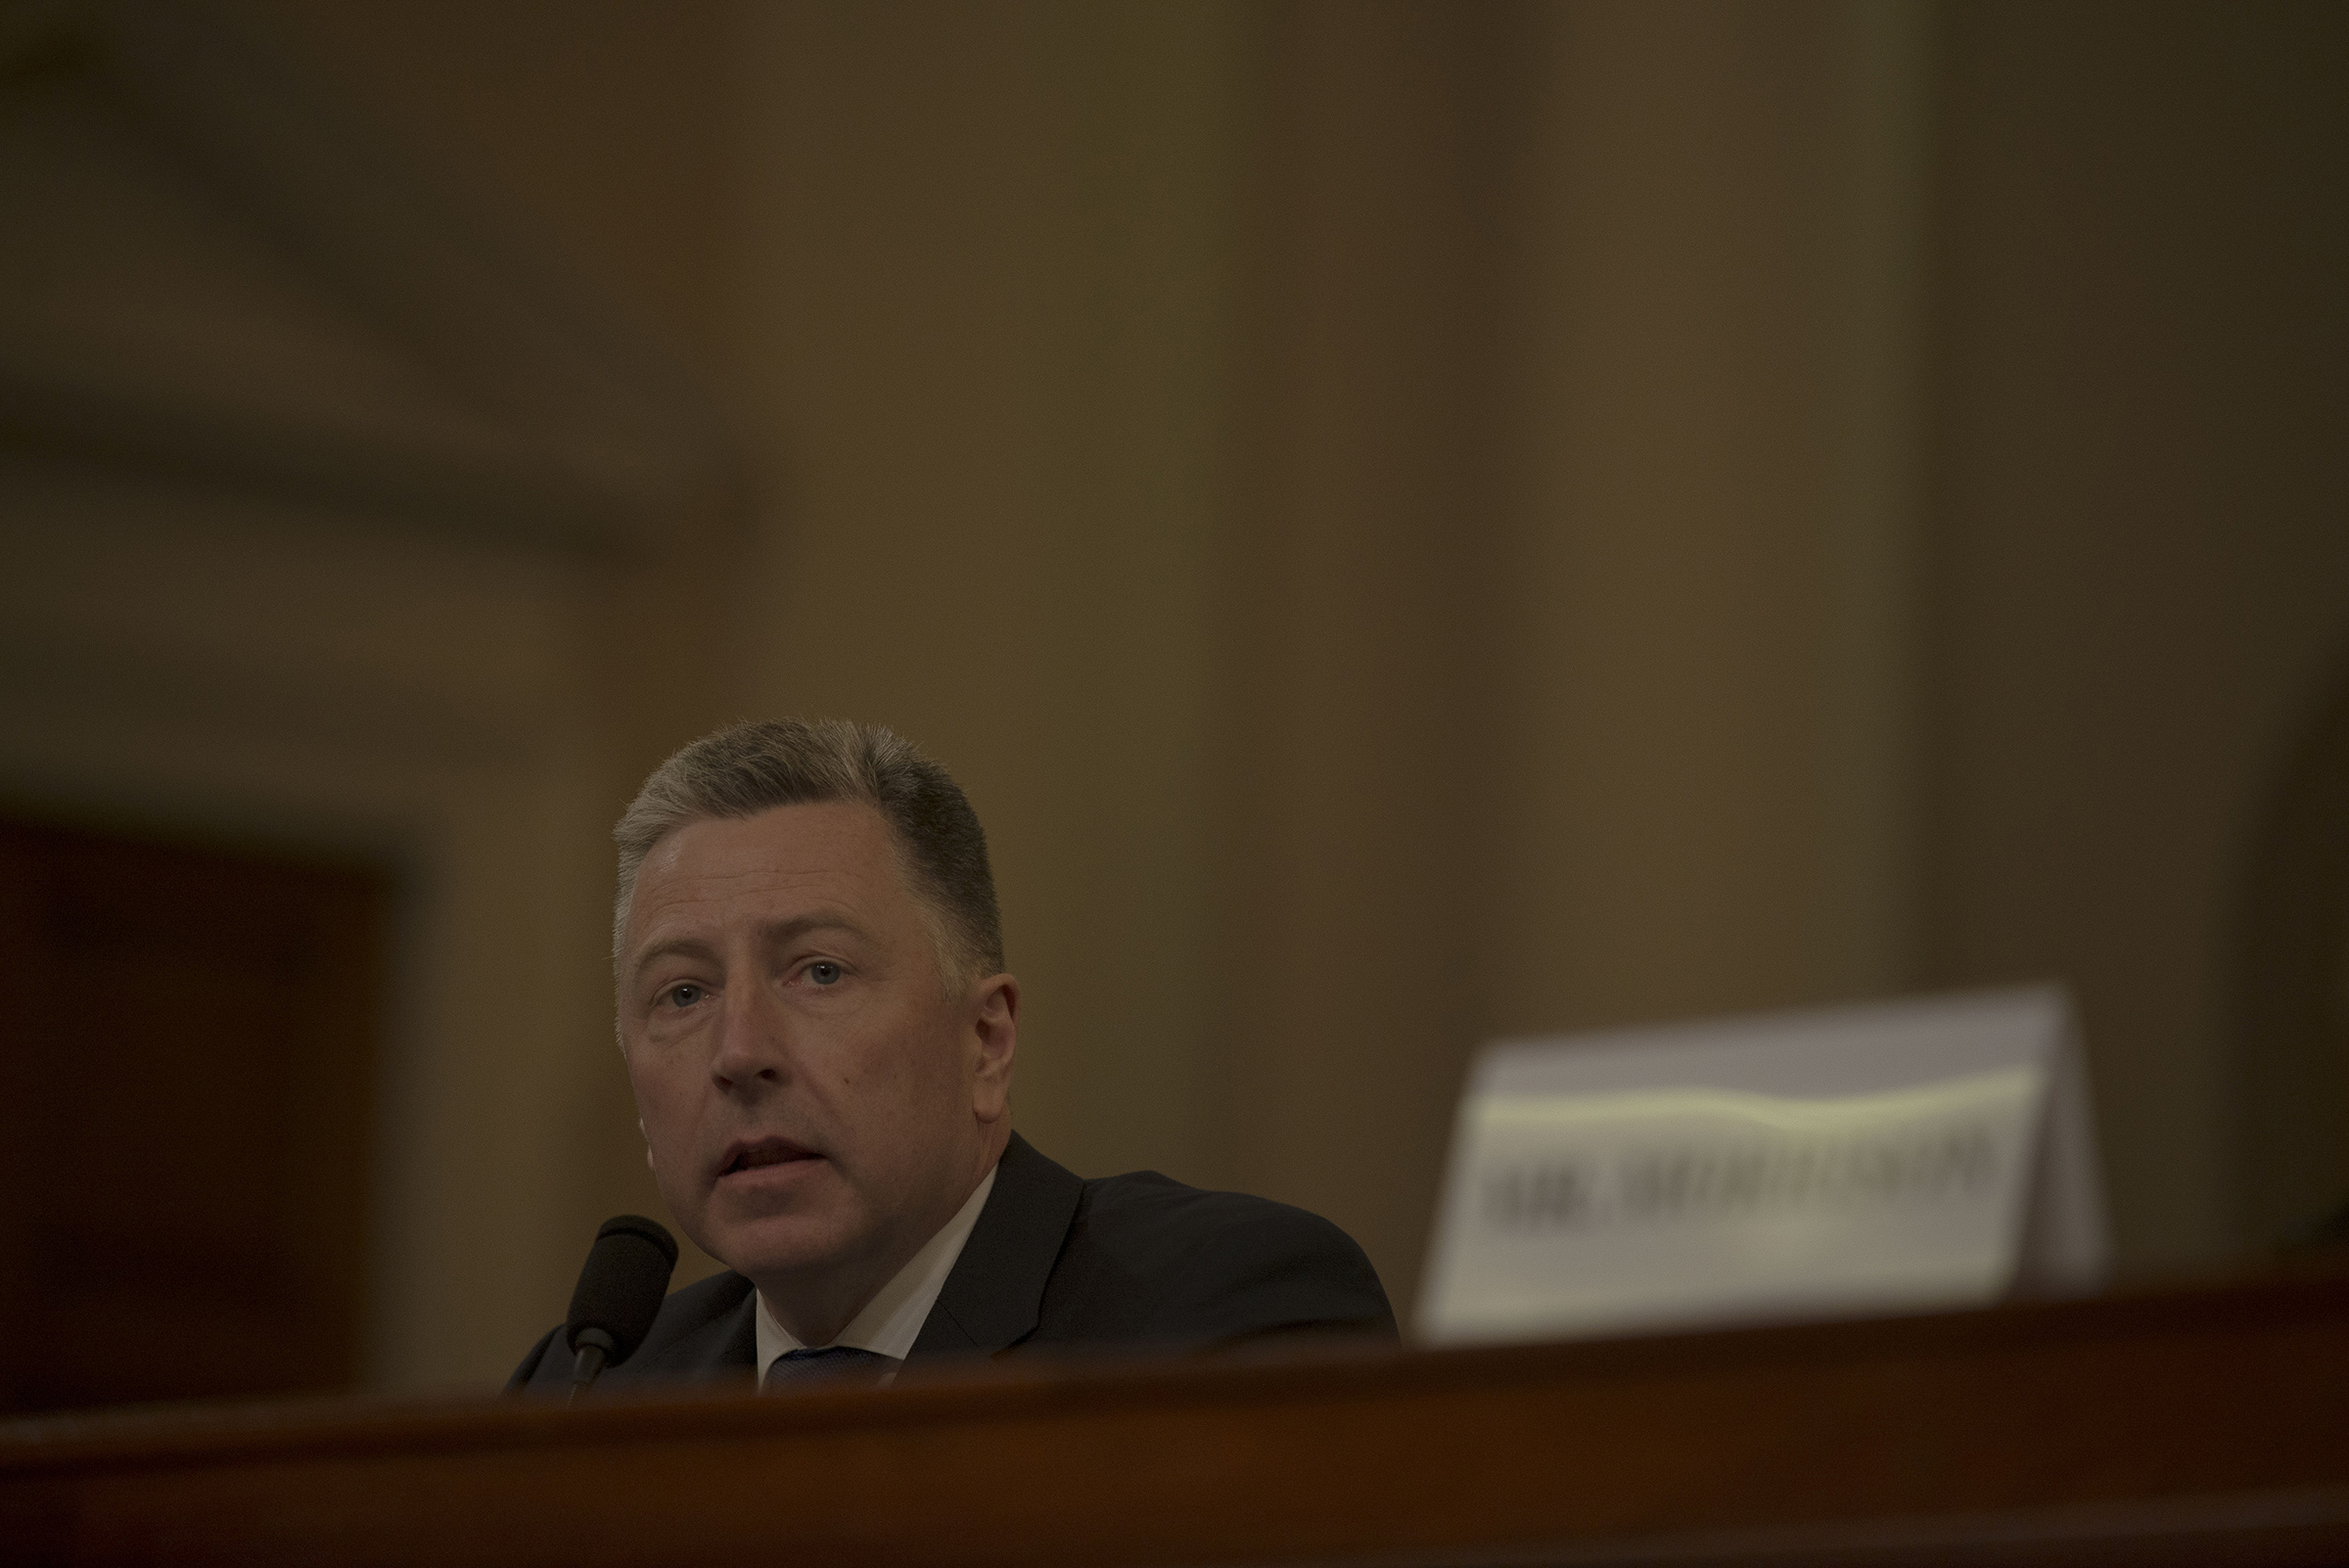 Ambassador Kurt Volker testifies during the House Intelligence Committee hearing on the impeachment inquiry on Capitol Hill in Washington, D.C. on Nov. 19, 2019.